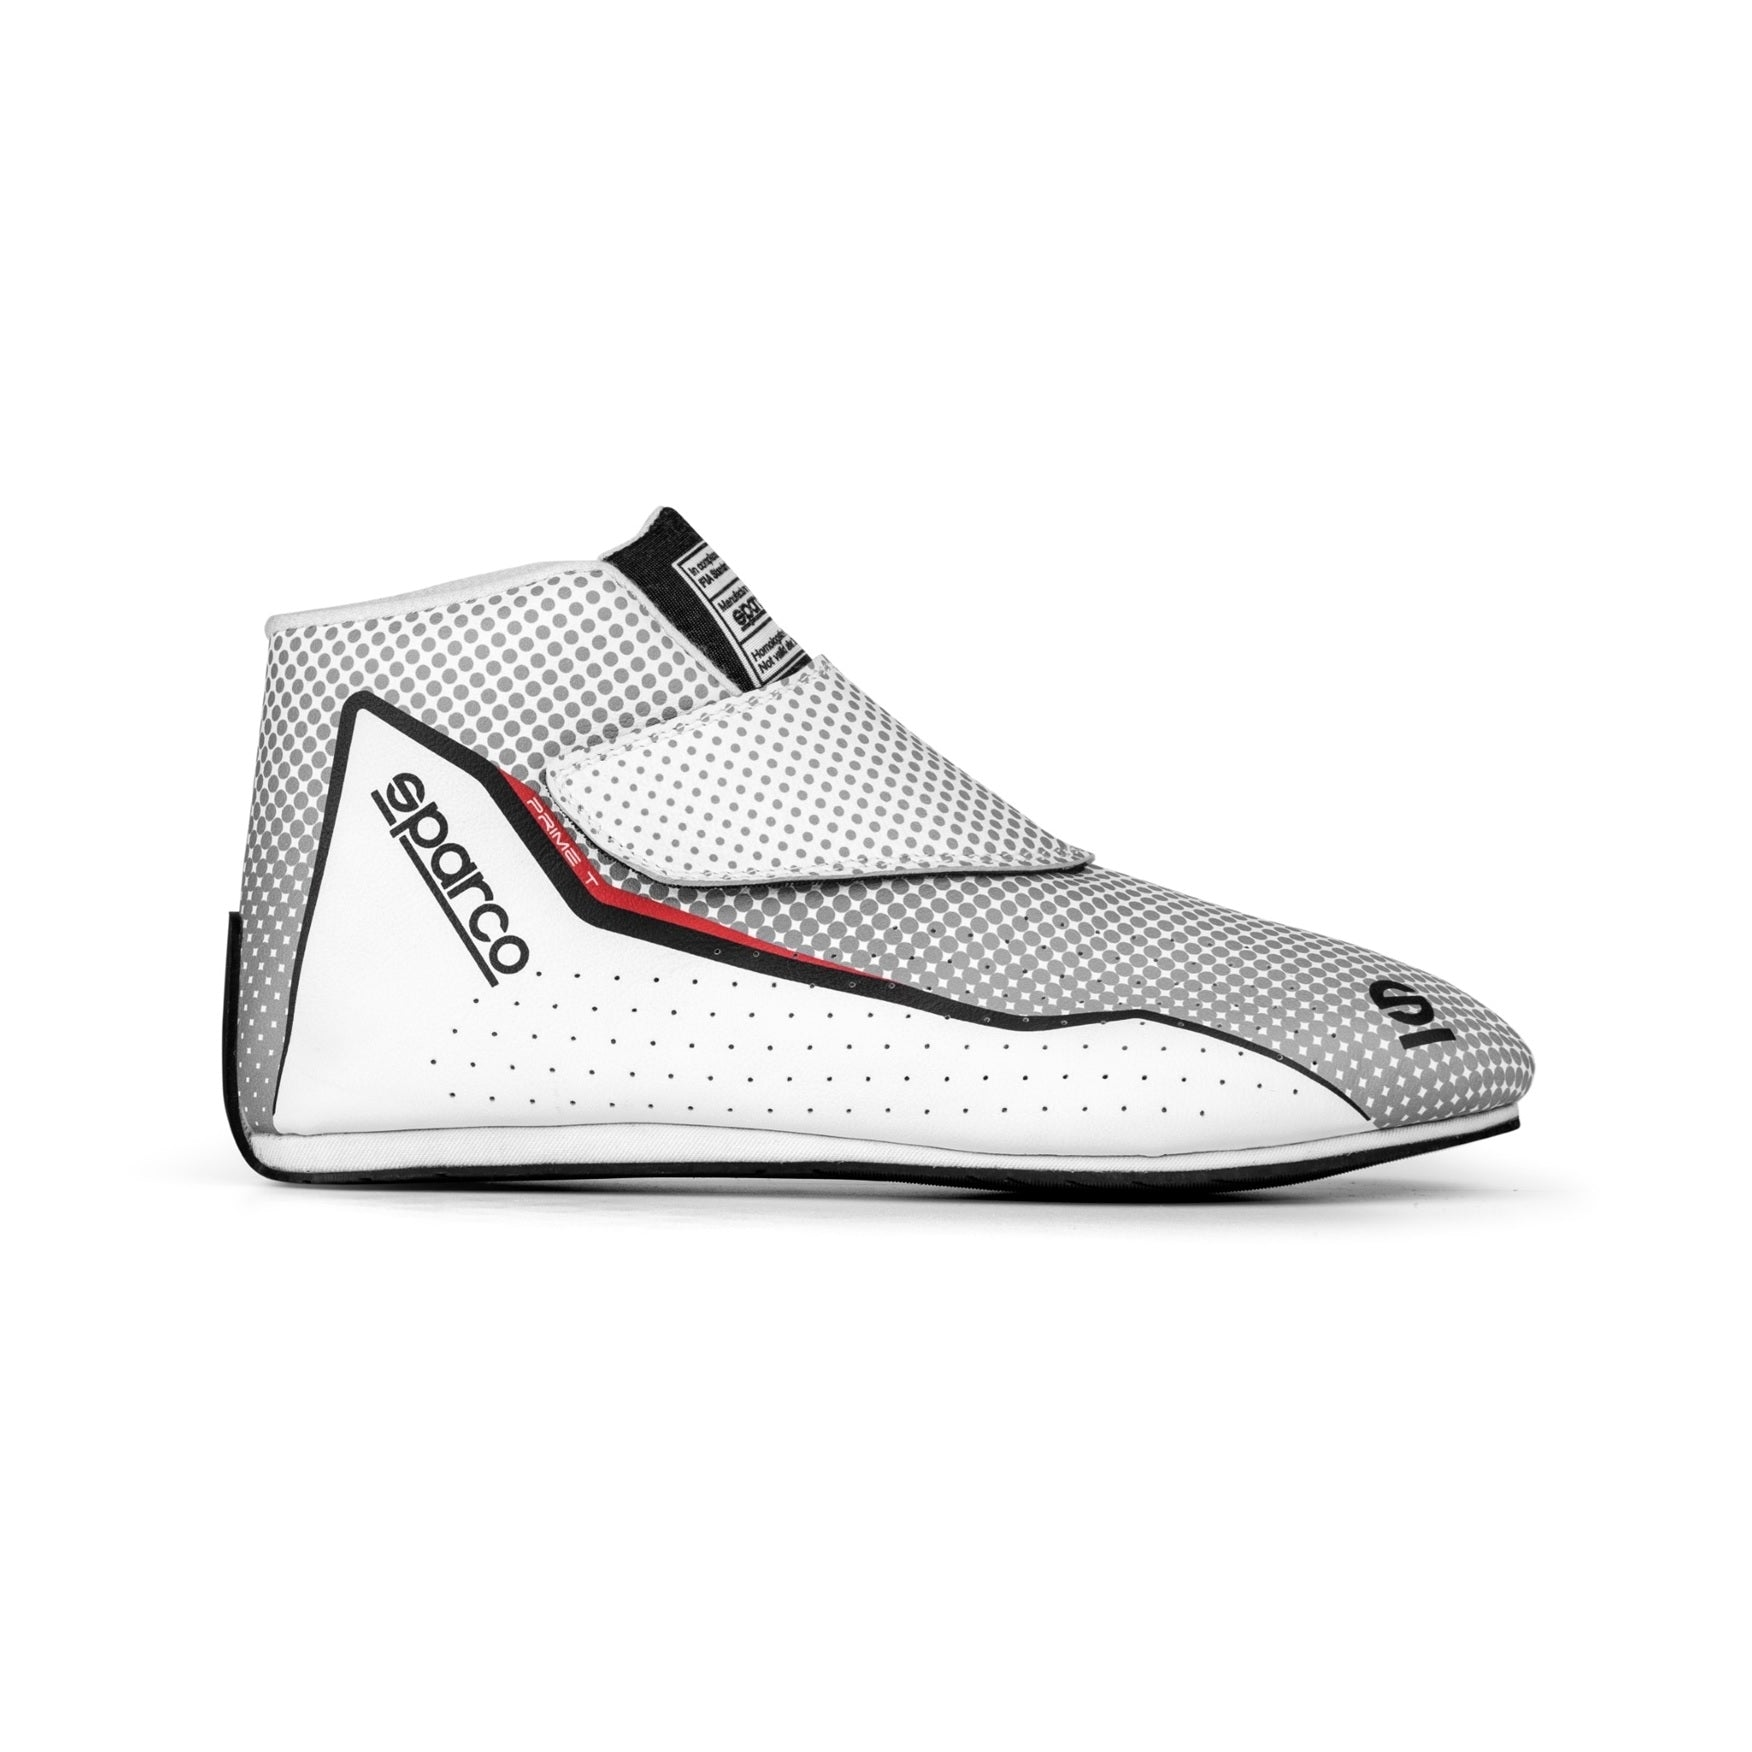 Sparco Prime T Shoes - Saferacer